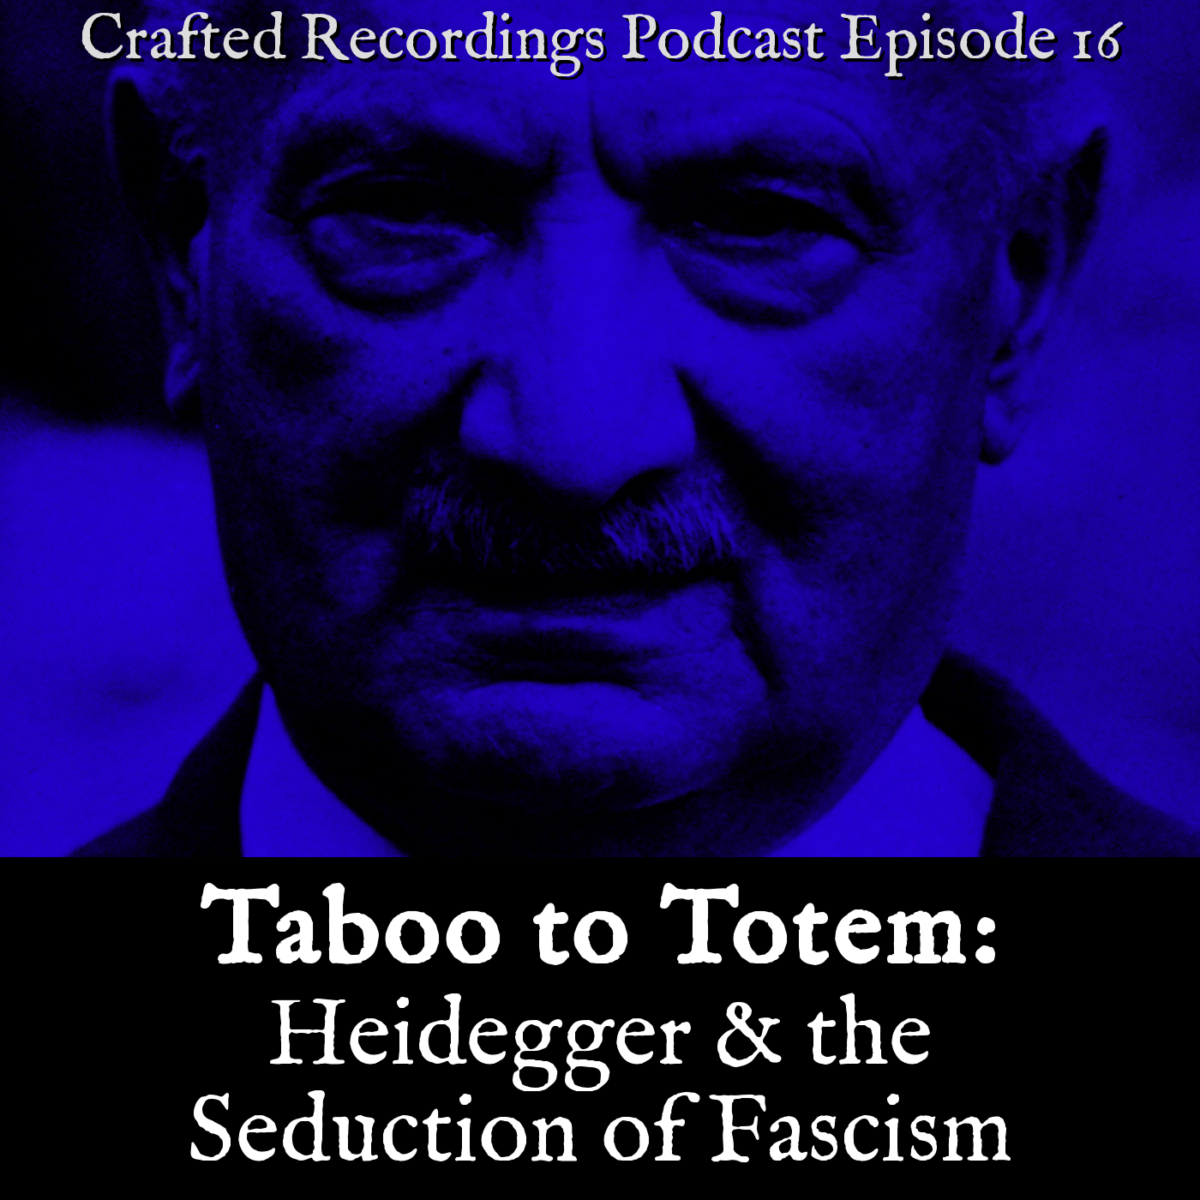 Podcast Episode 16 – Taboo to Totem: Heidegger & the Seduction of Fascism